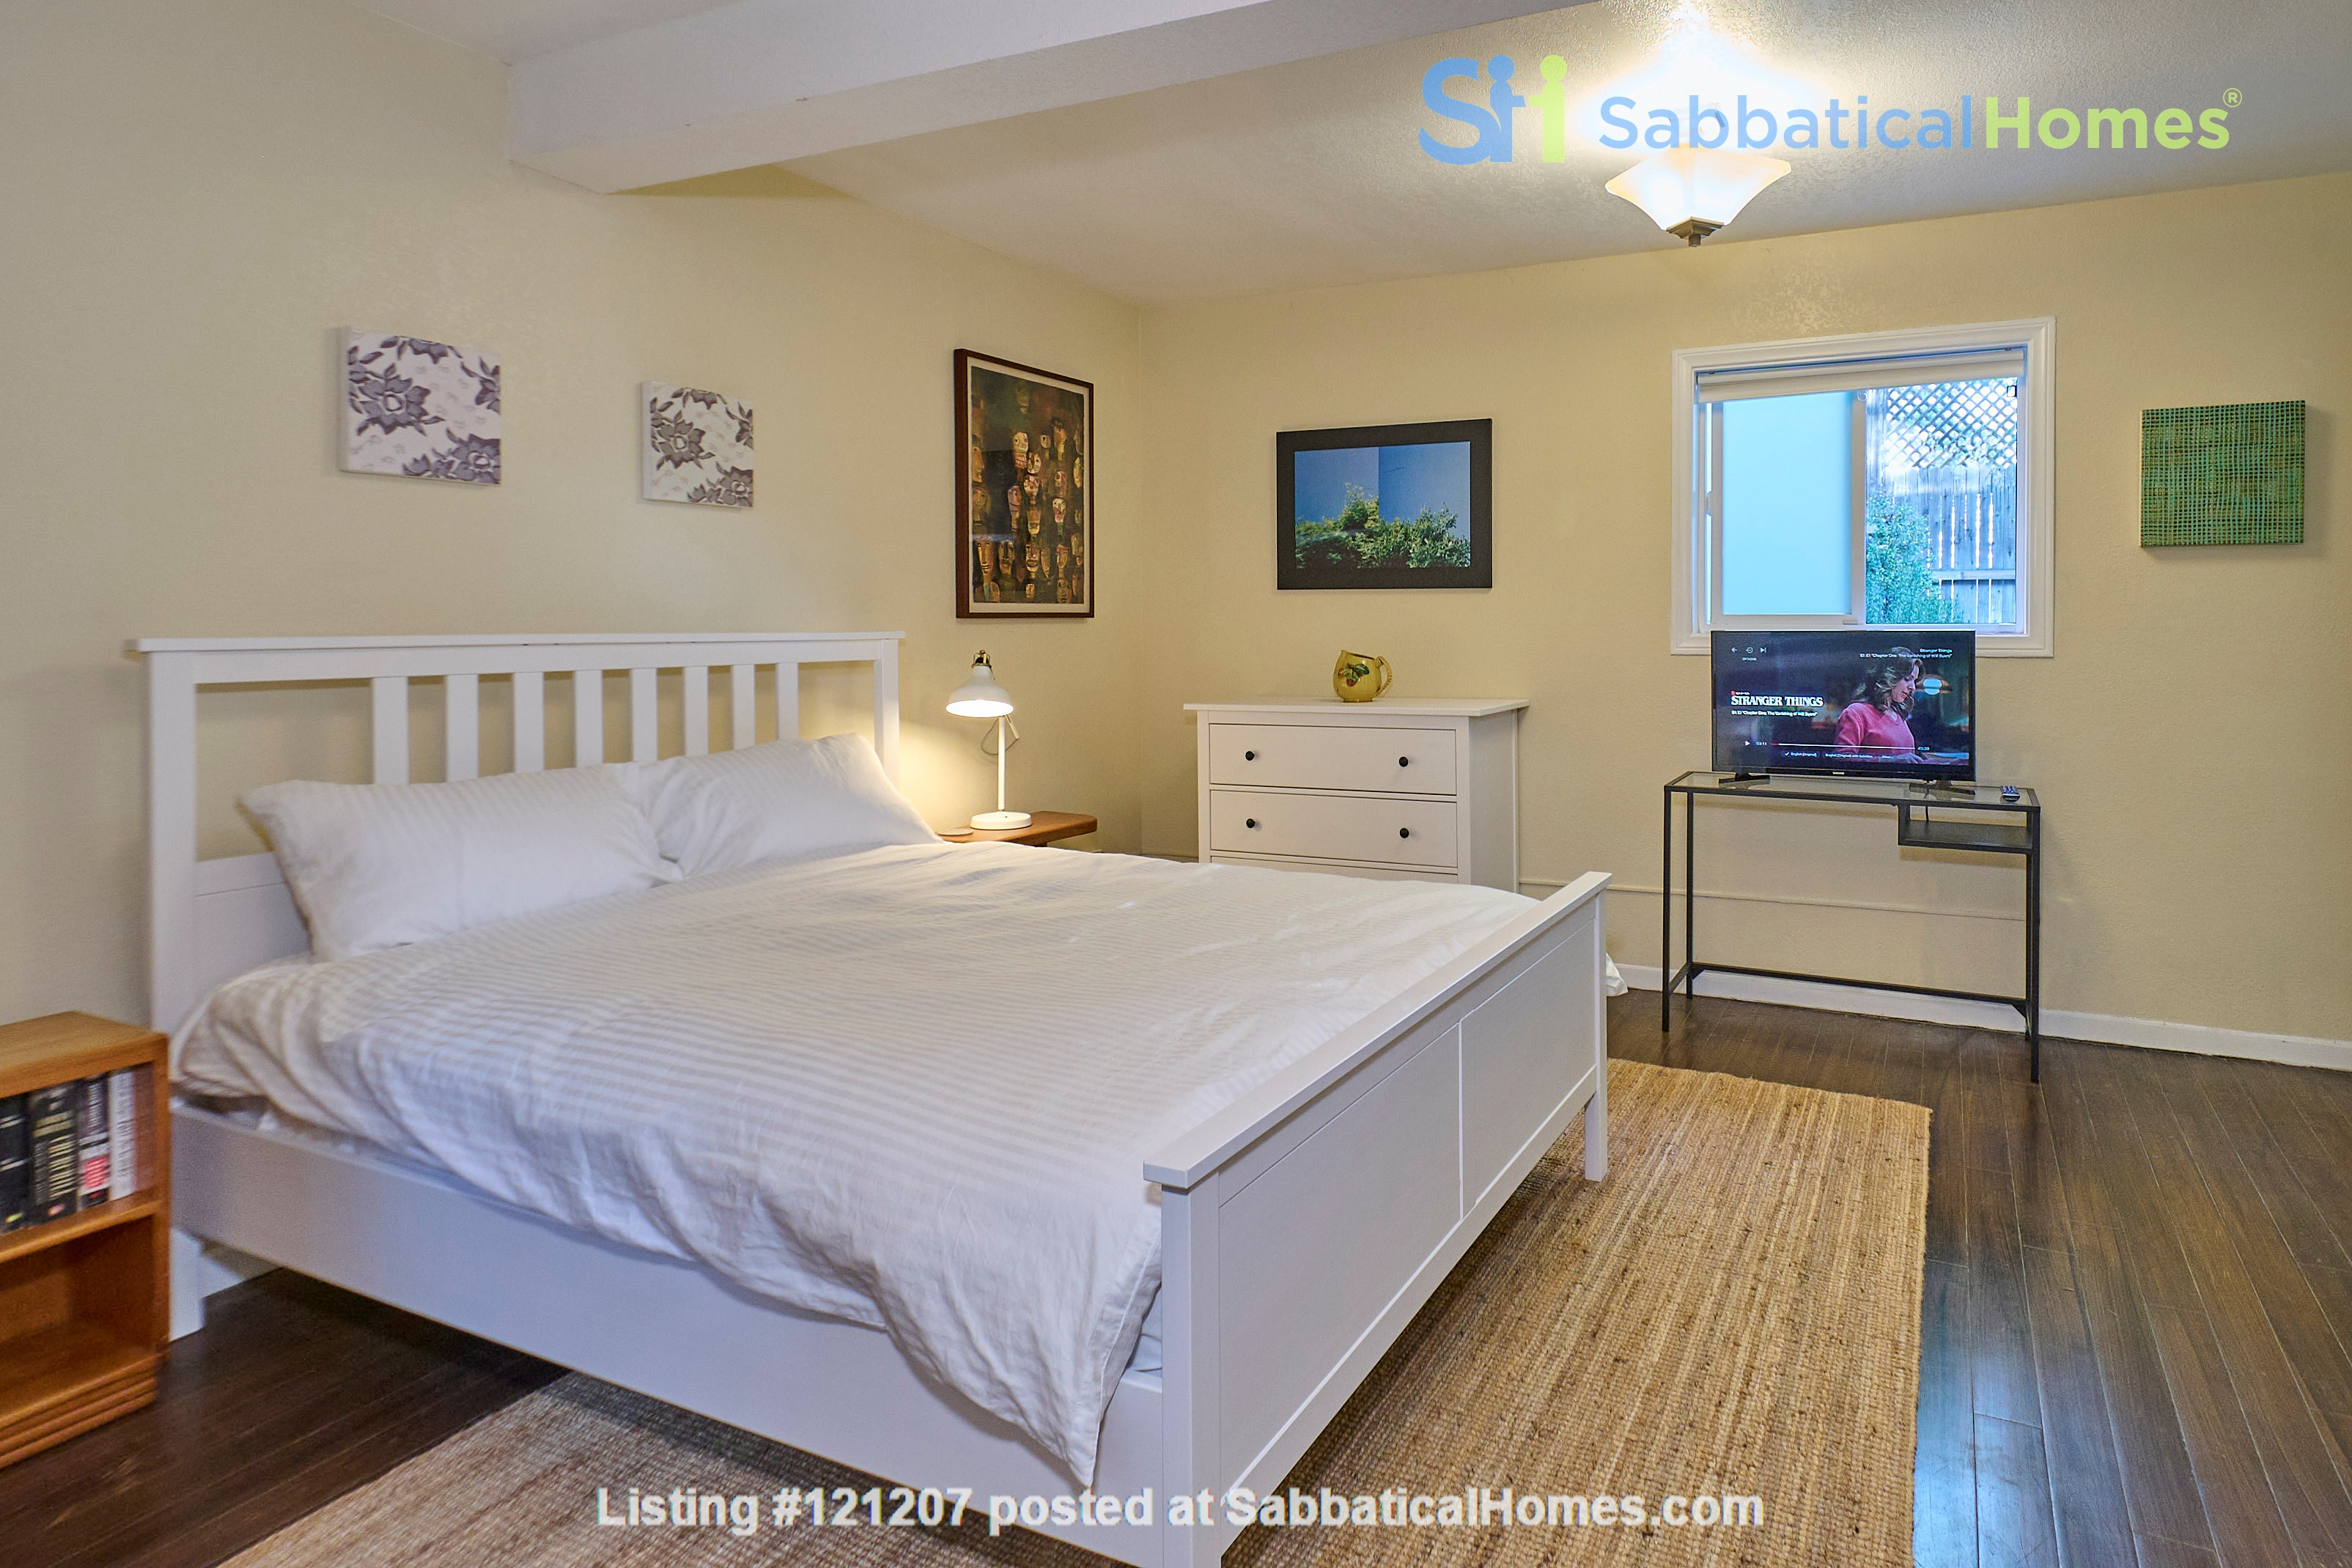 Furnished rooms in South Pasadena hillside home Home Rental in Los Angeles, California, United States 1